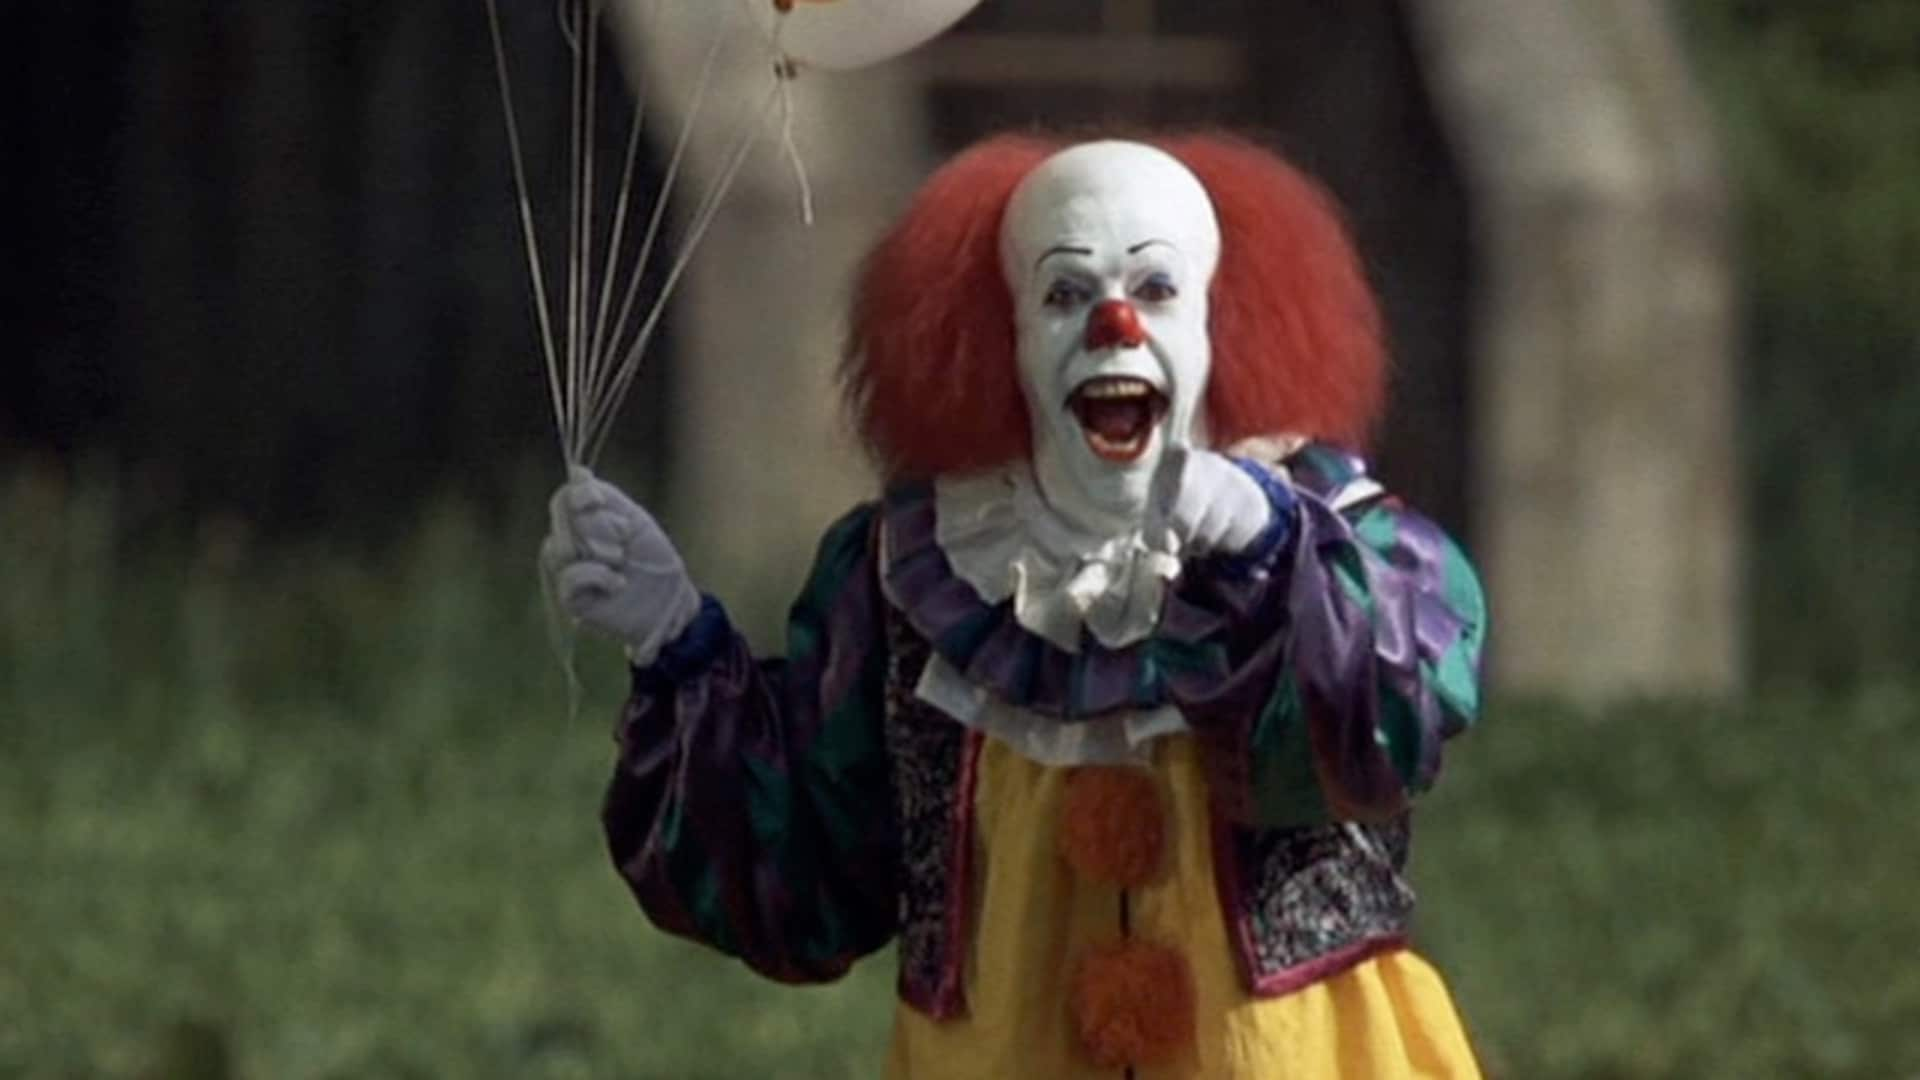 Monster: Tim Curry as Pennywise the Laughing Clown in Stephen King's It (1990) -- Tommy Lee Wallace.